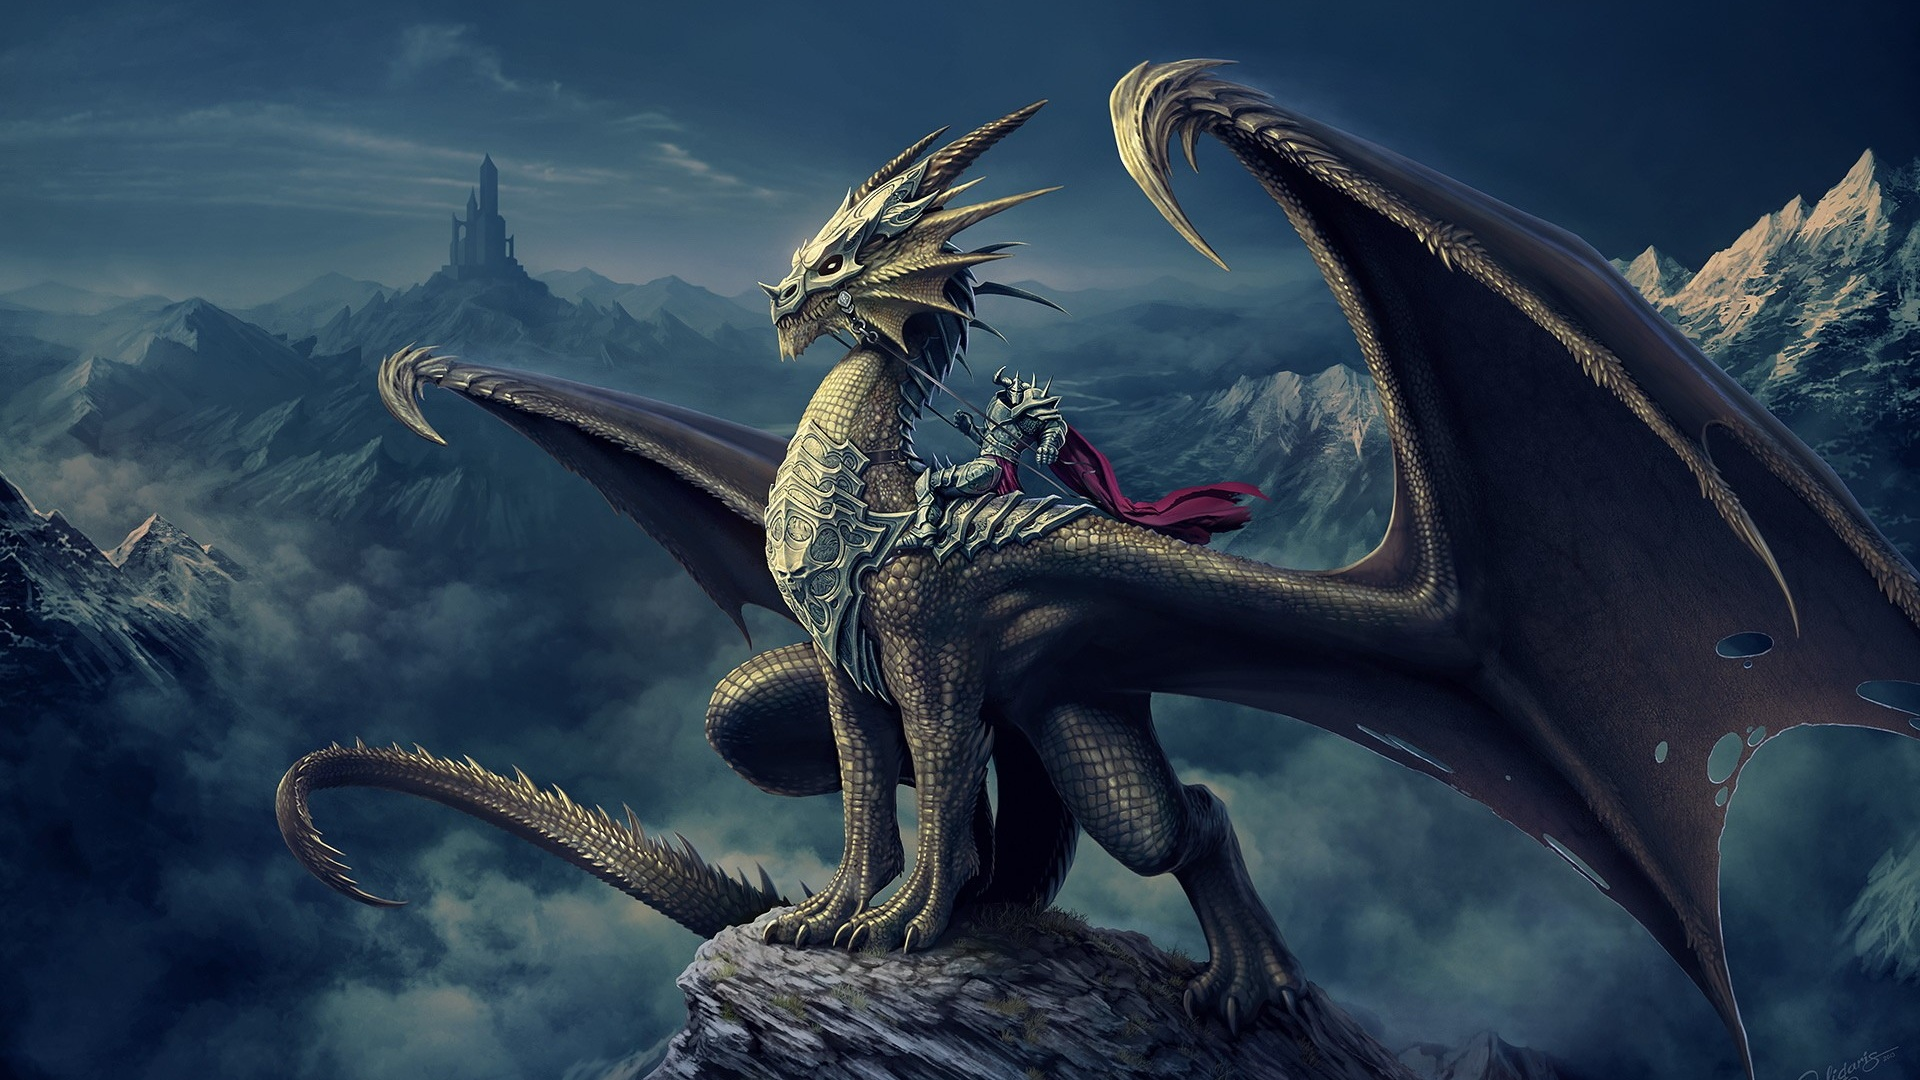 1920x1080 Dragon Rider desktop PC and Mac wallpaper 1920x1080